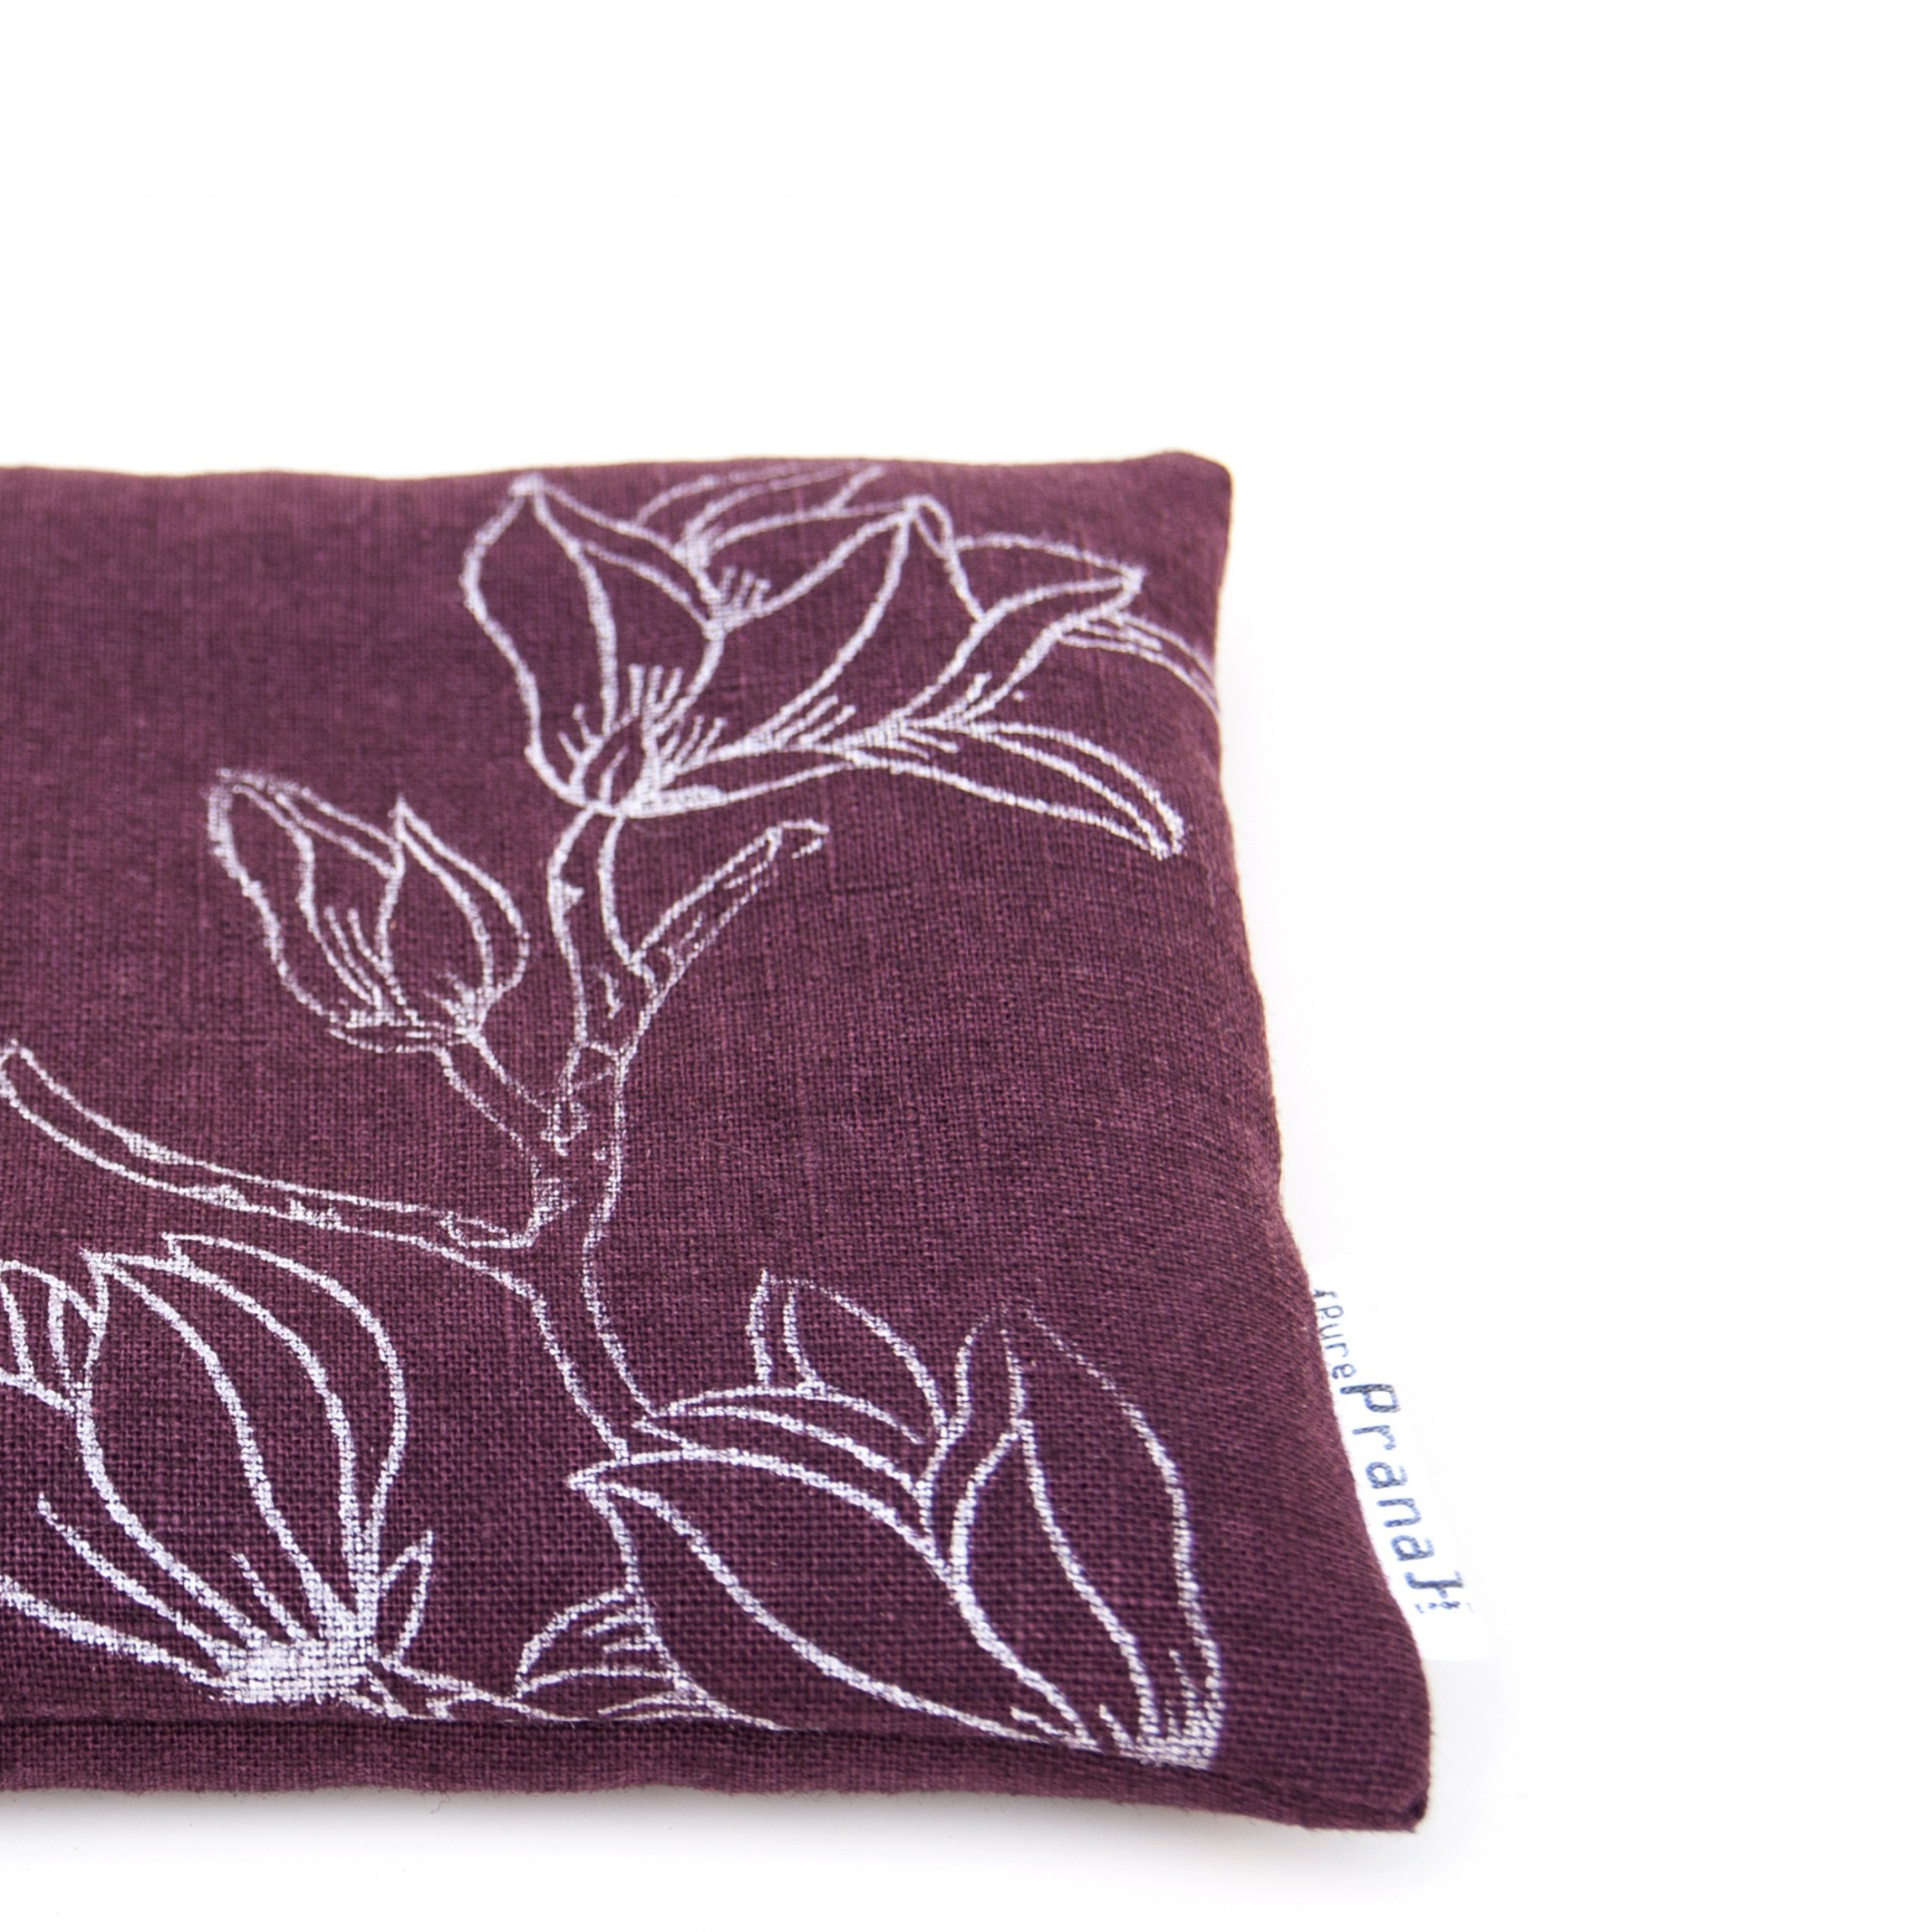 Singing bowl cushion Eggplant Magnolia